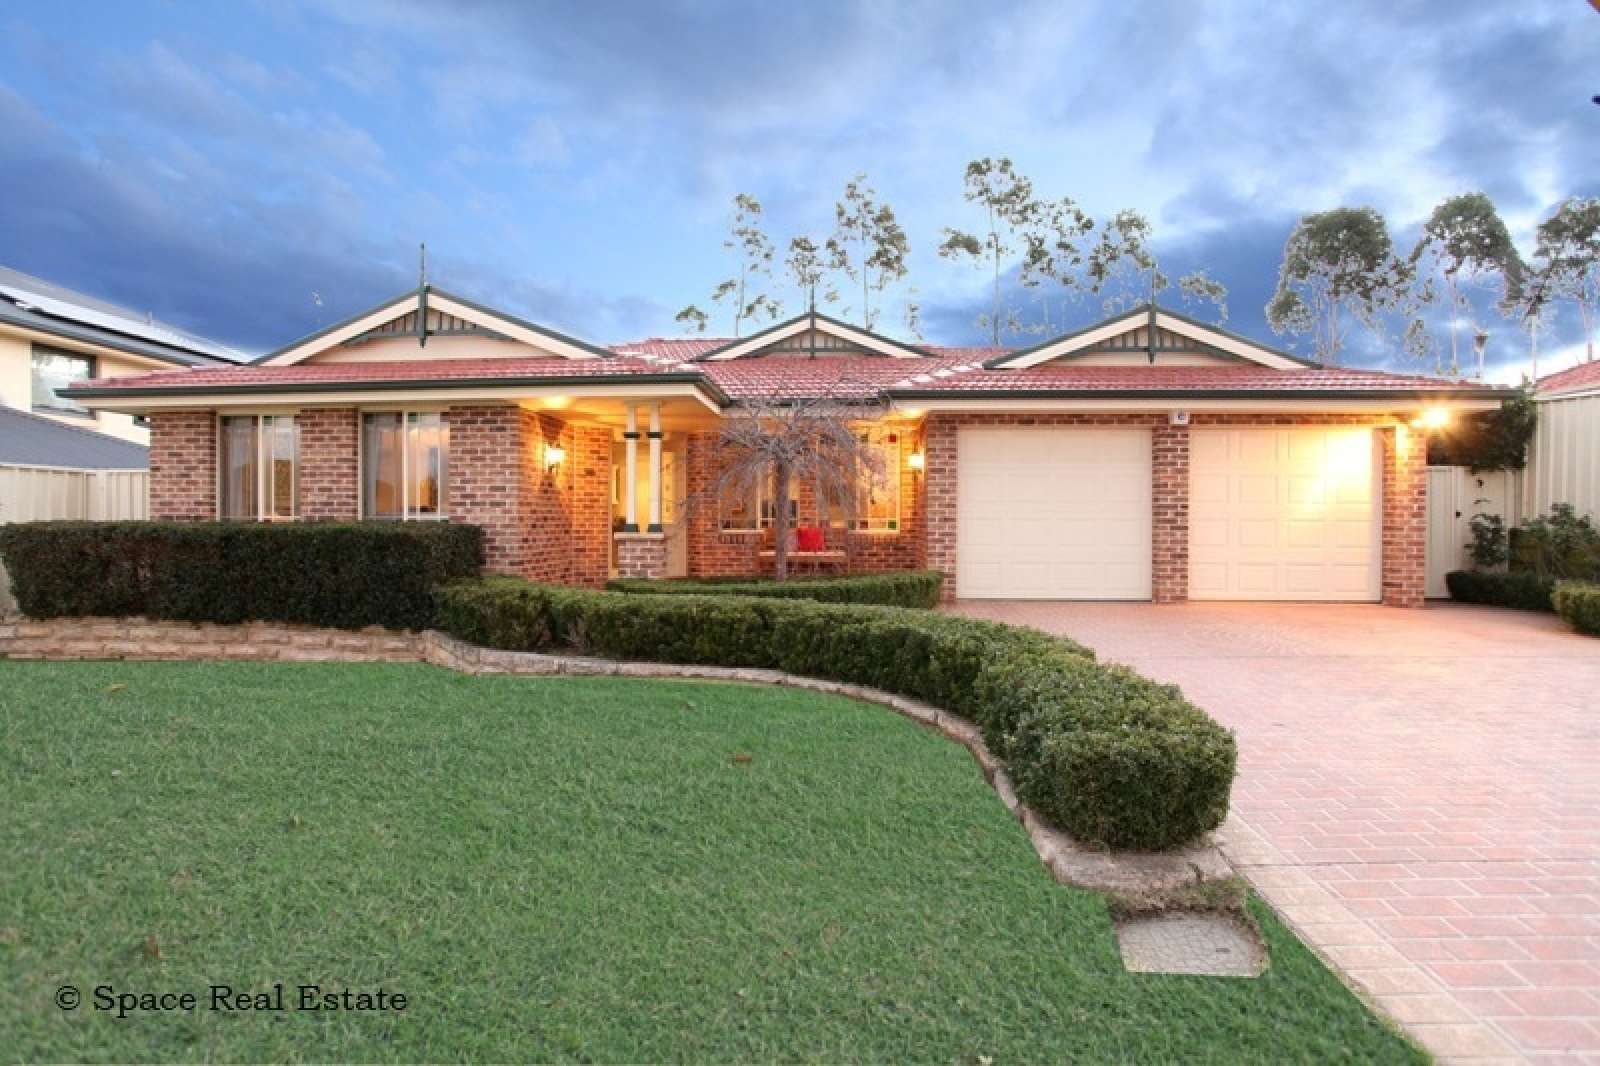 38 George Bransby Circuit,Harrington Park,NSW,4 Bedrooms Bedrooms,2 BathroomsBathrooms,House,George Bransby Circuit,1531